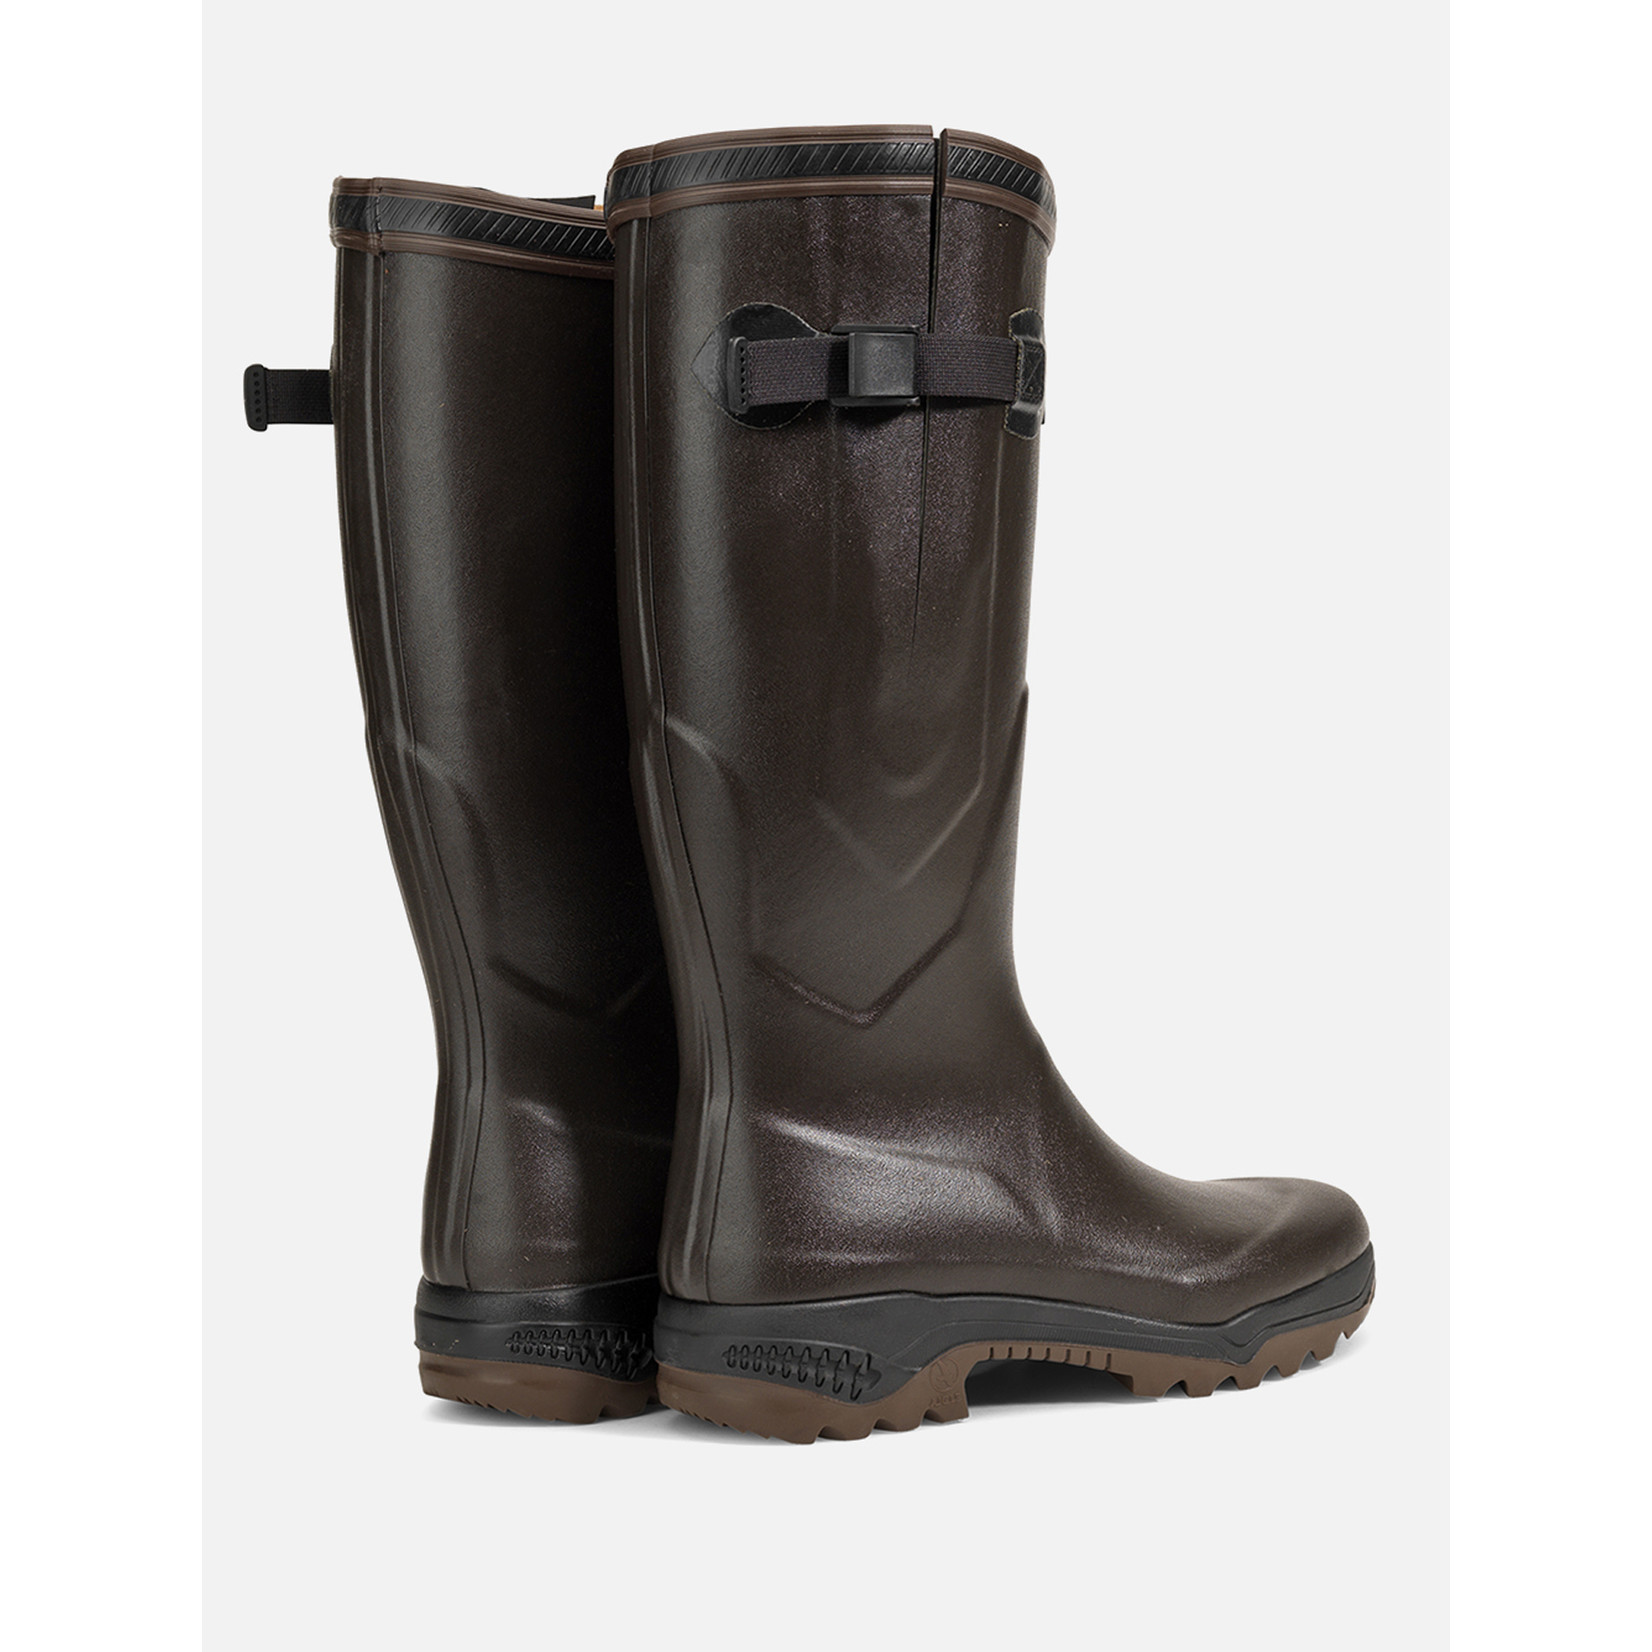 Aigle Anti-fatigue hunting boots Parcours 2 Vario